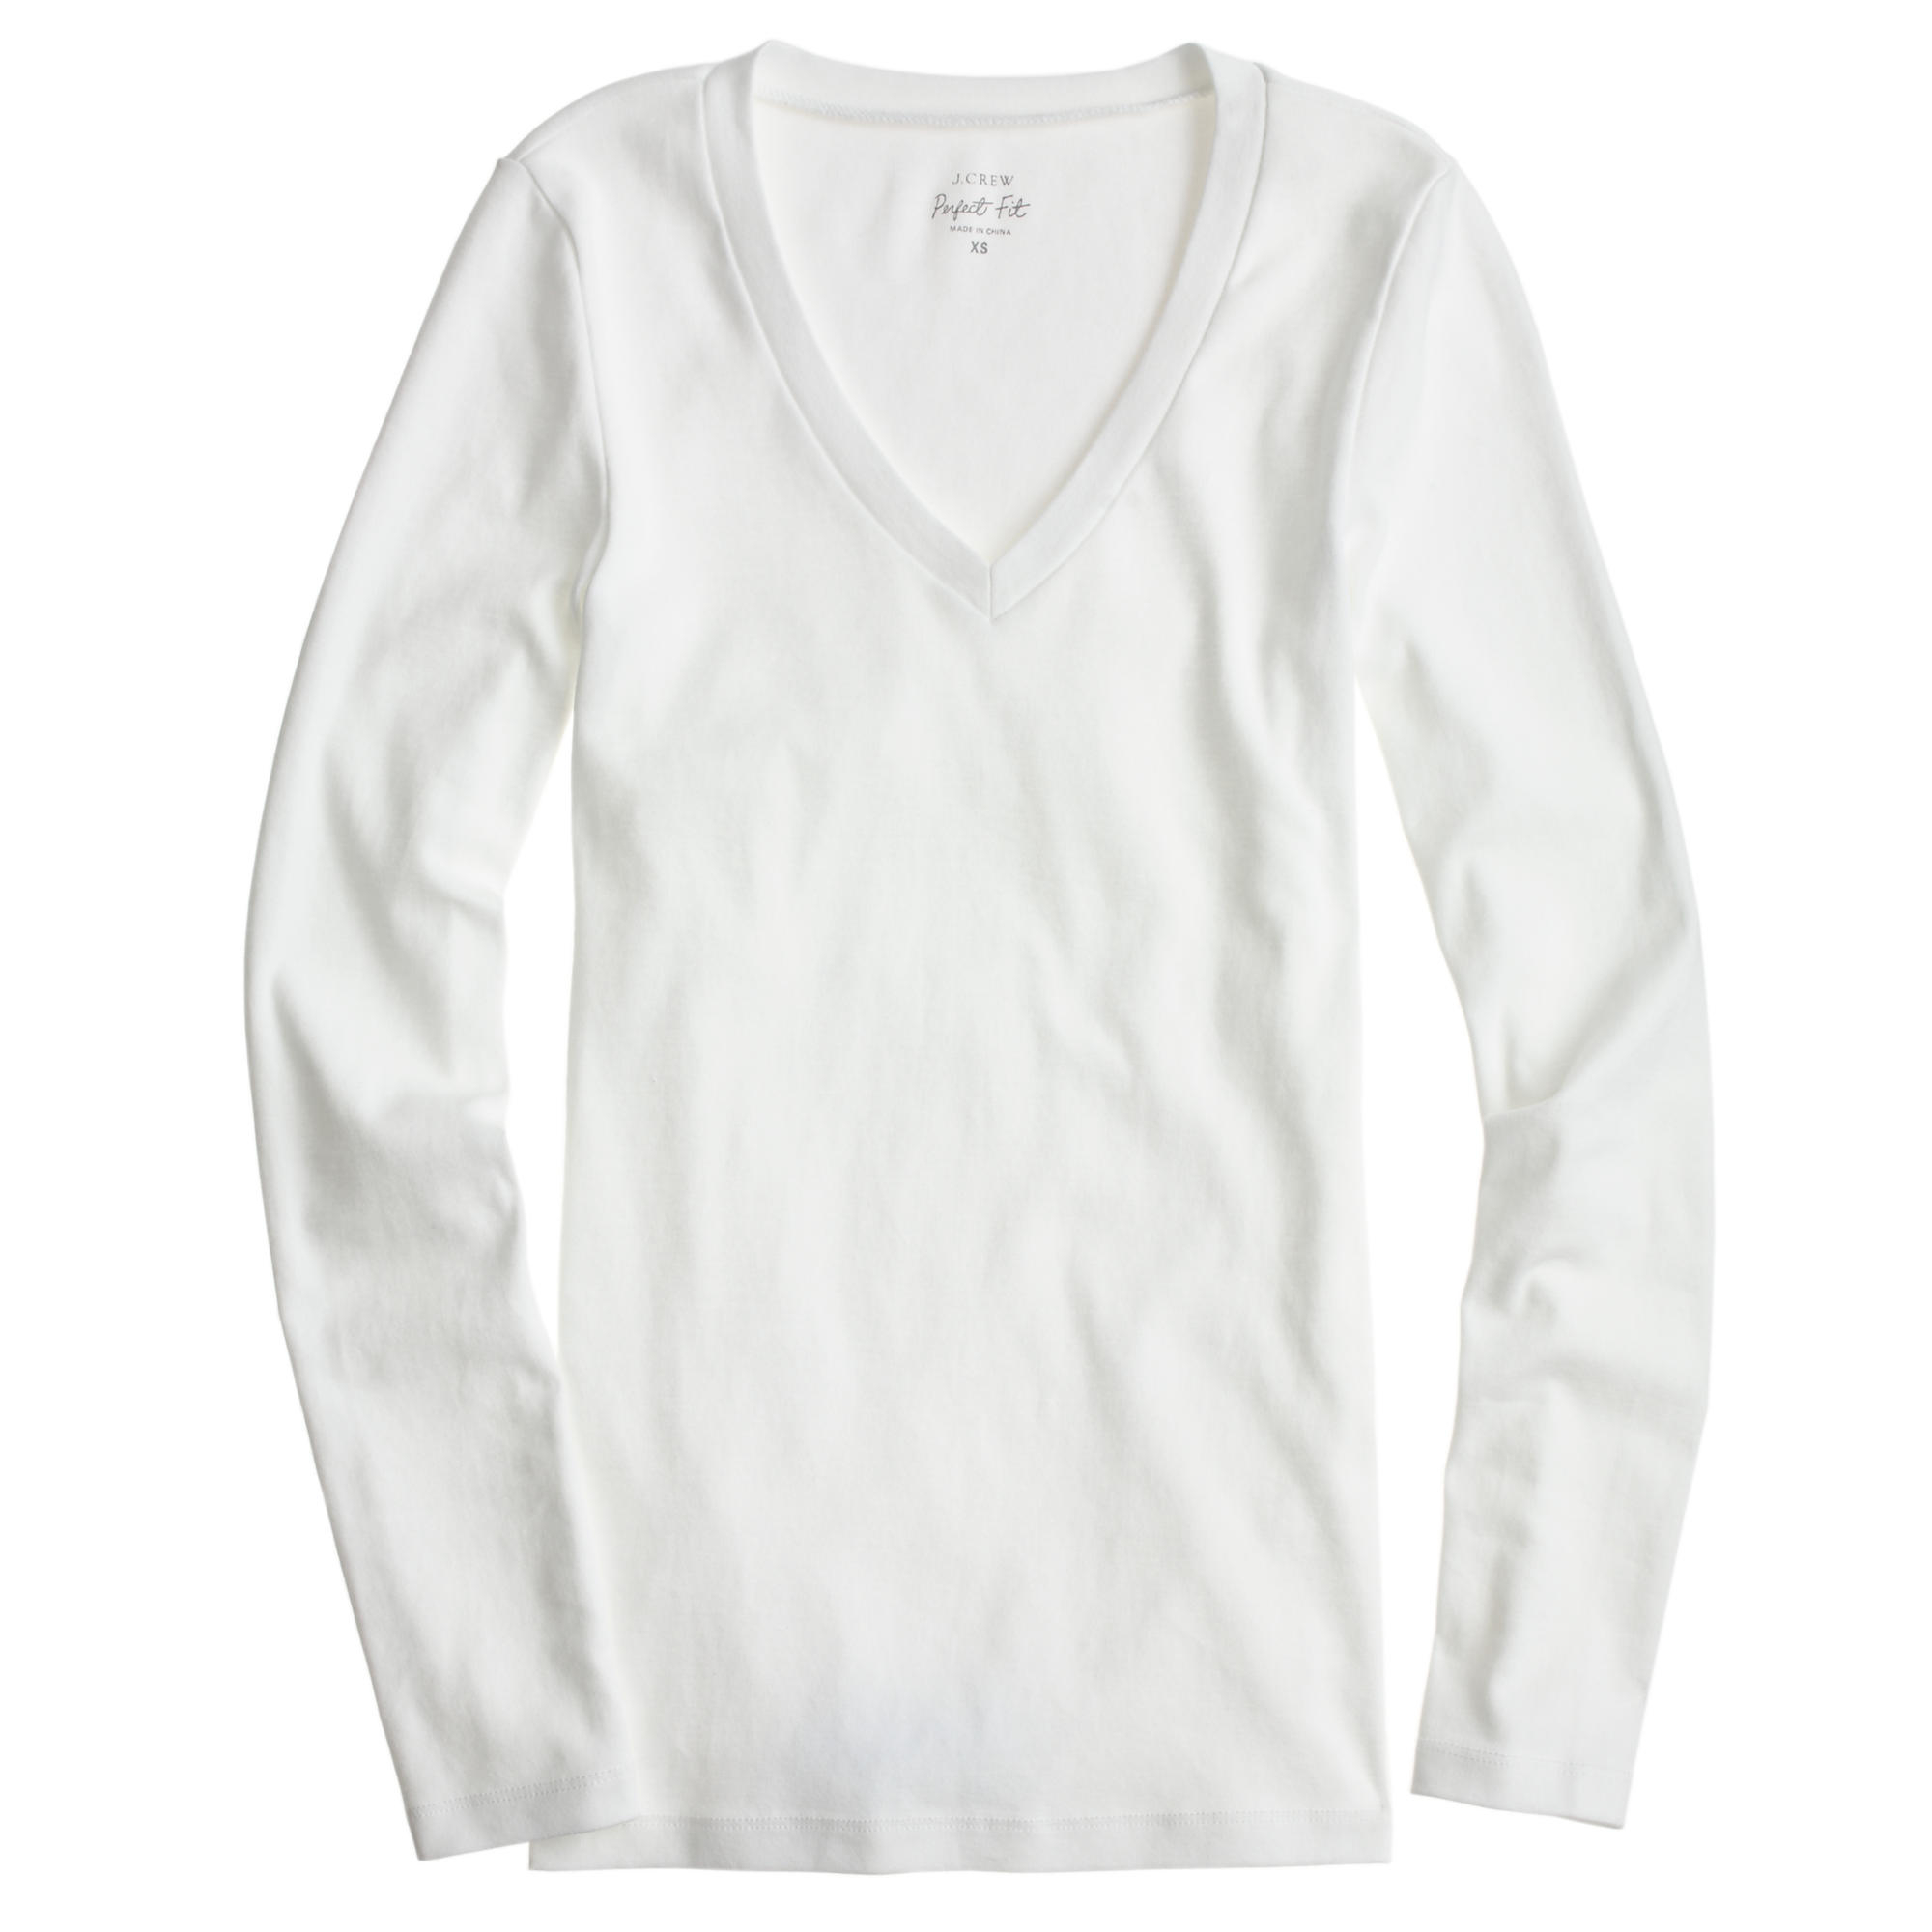 Perfect fit long sleeve v neck t shirt in white lyst for Long white v neck t shirt